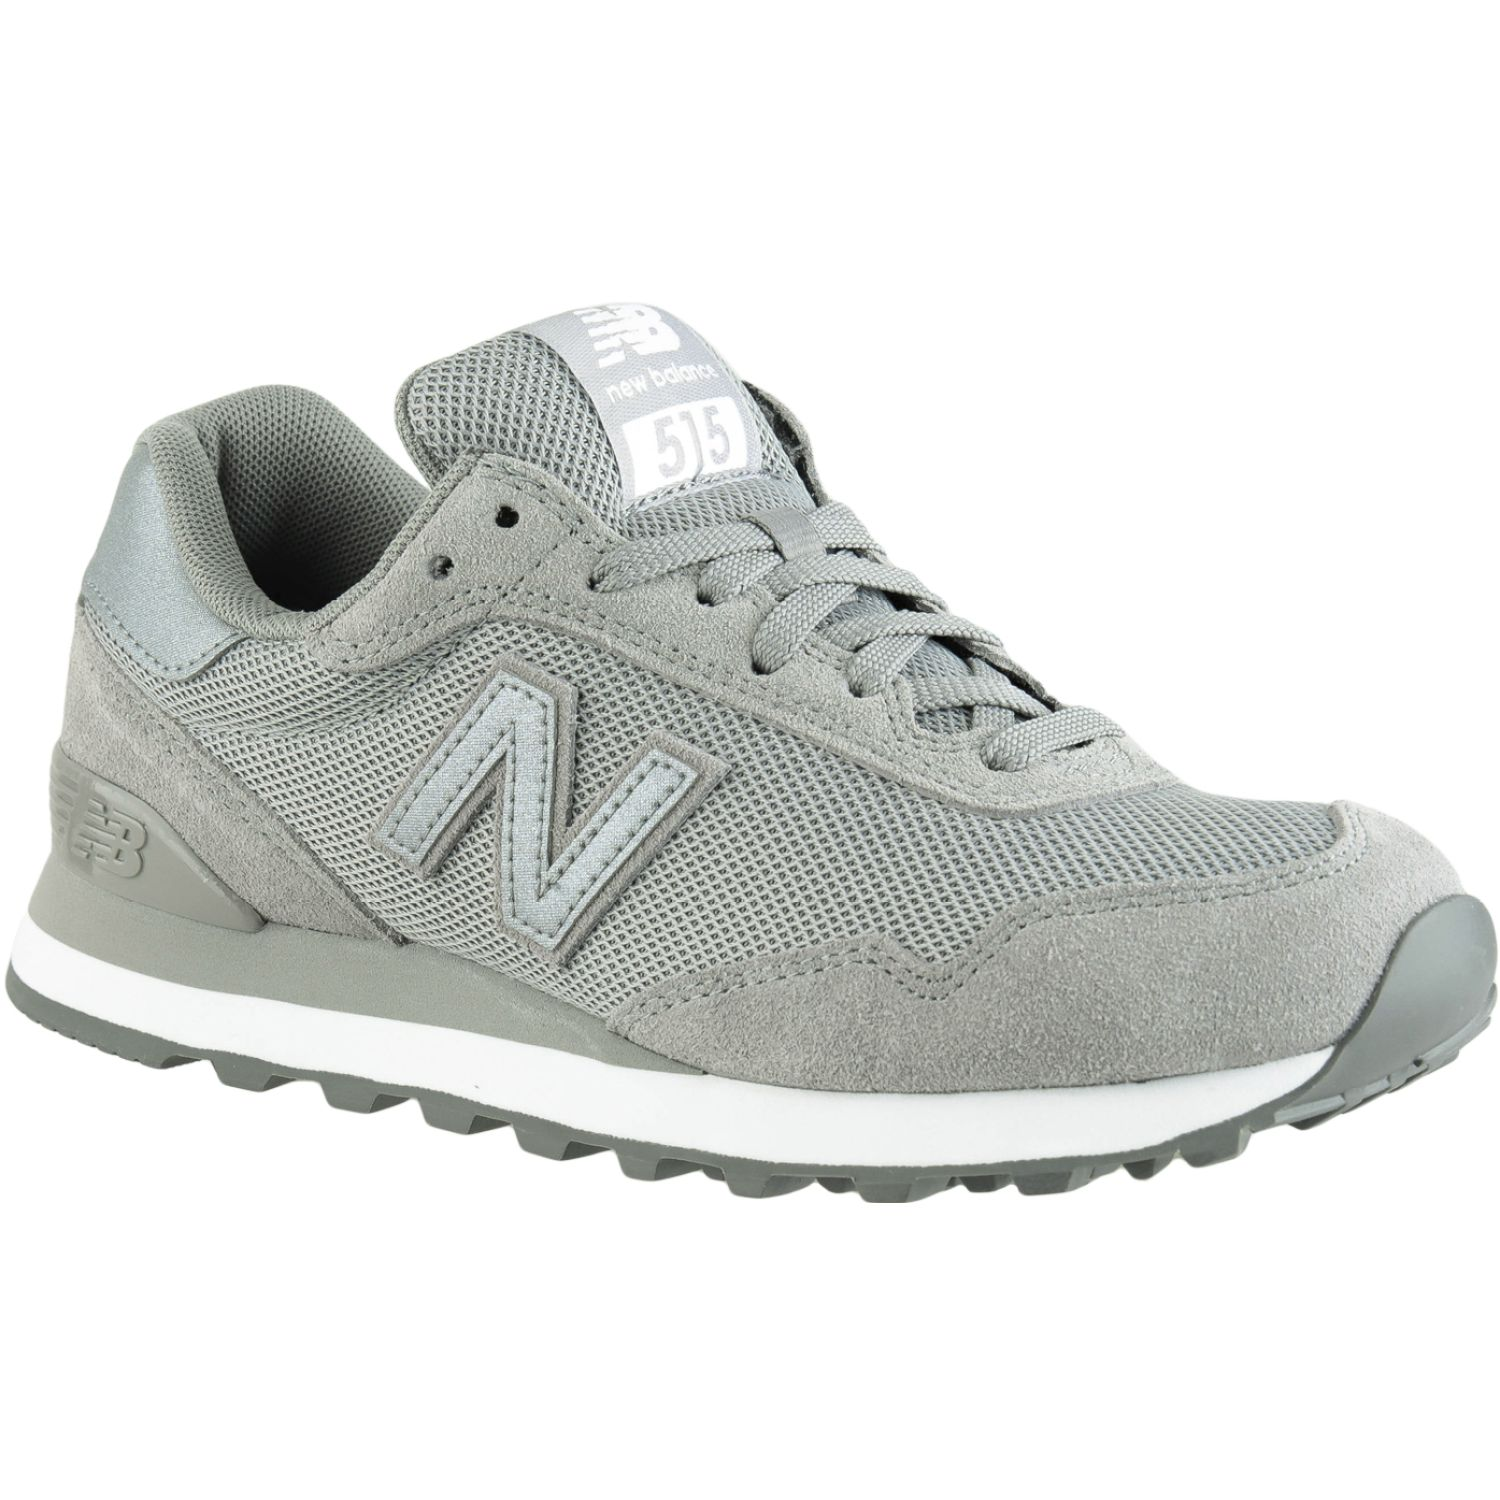 New Balance 515 Gris Walking